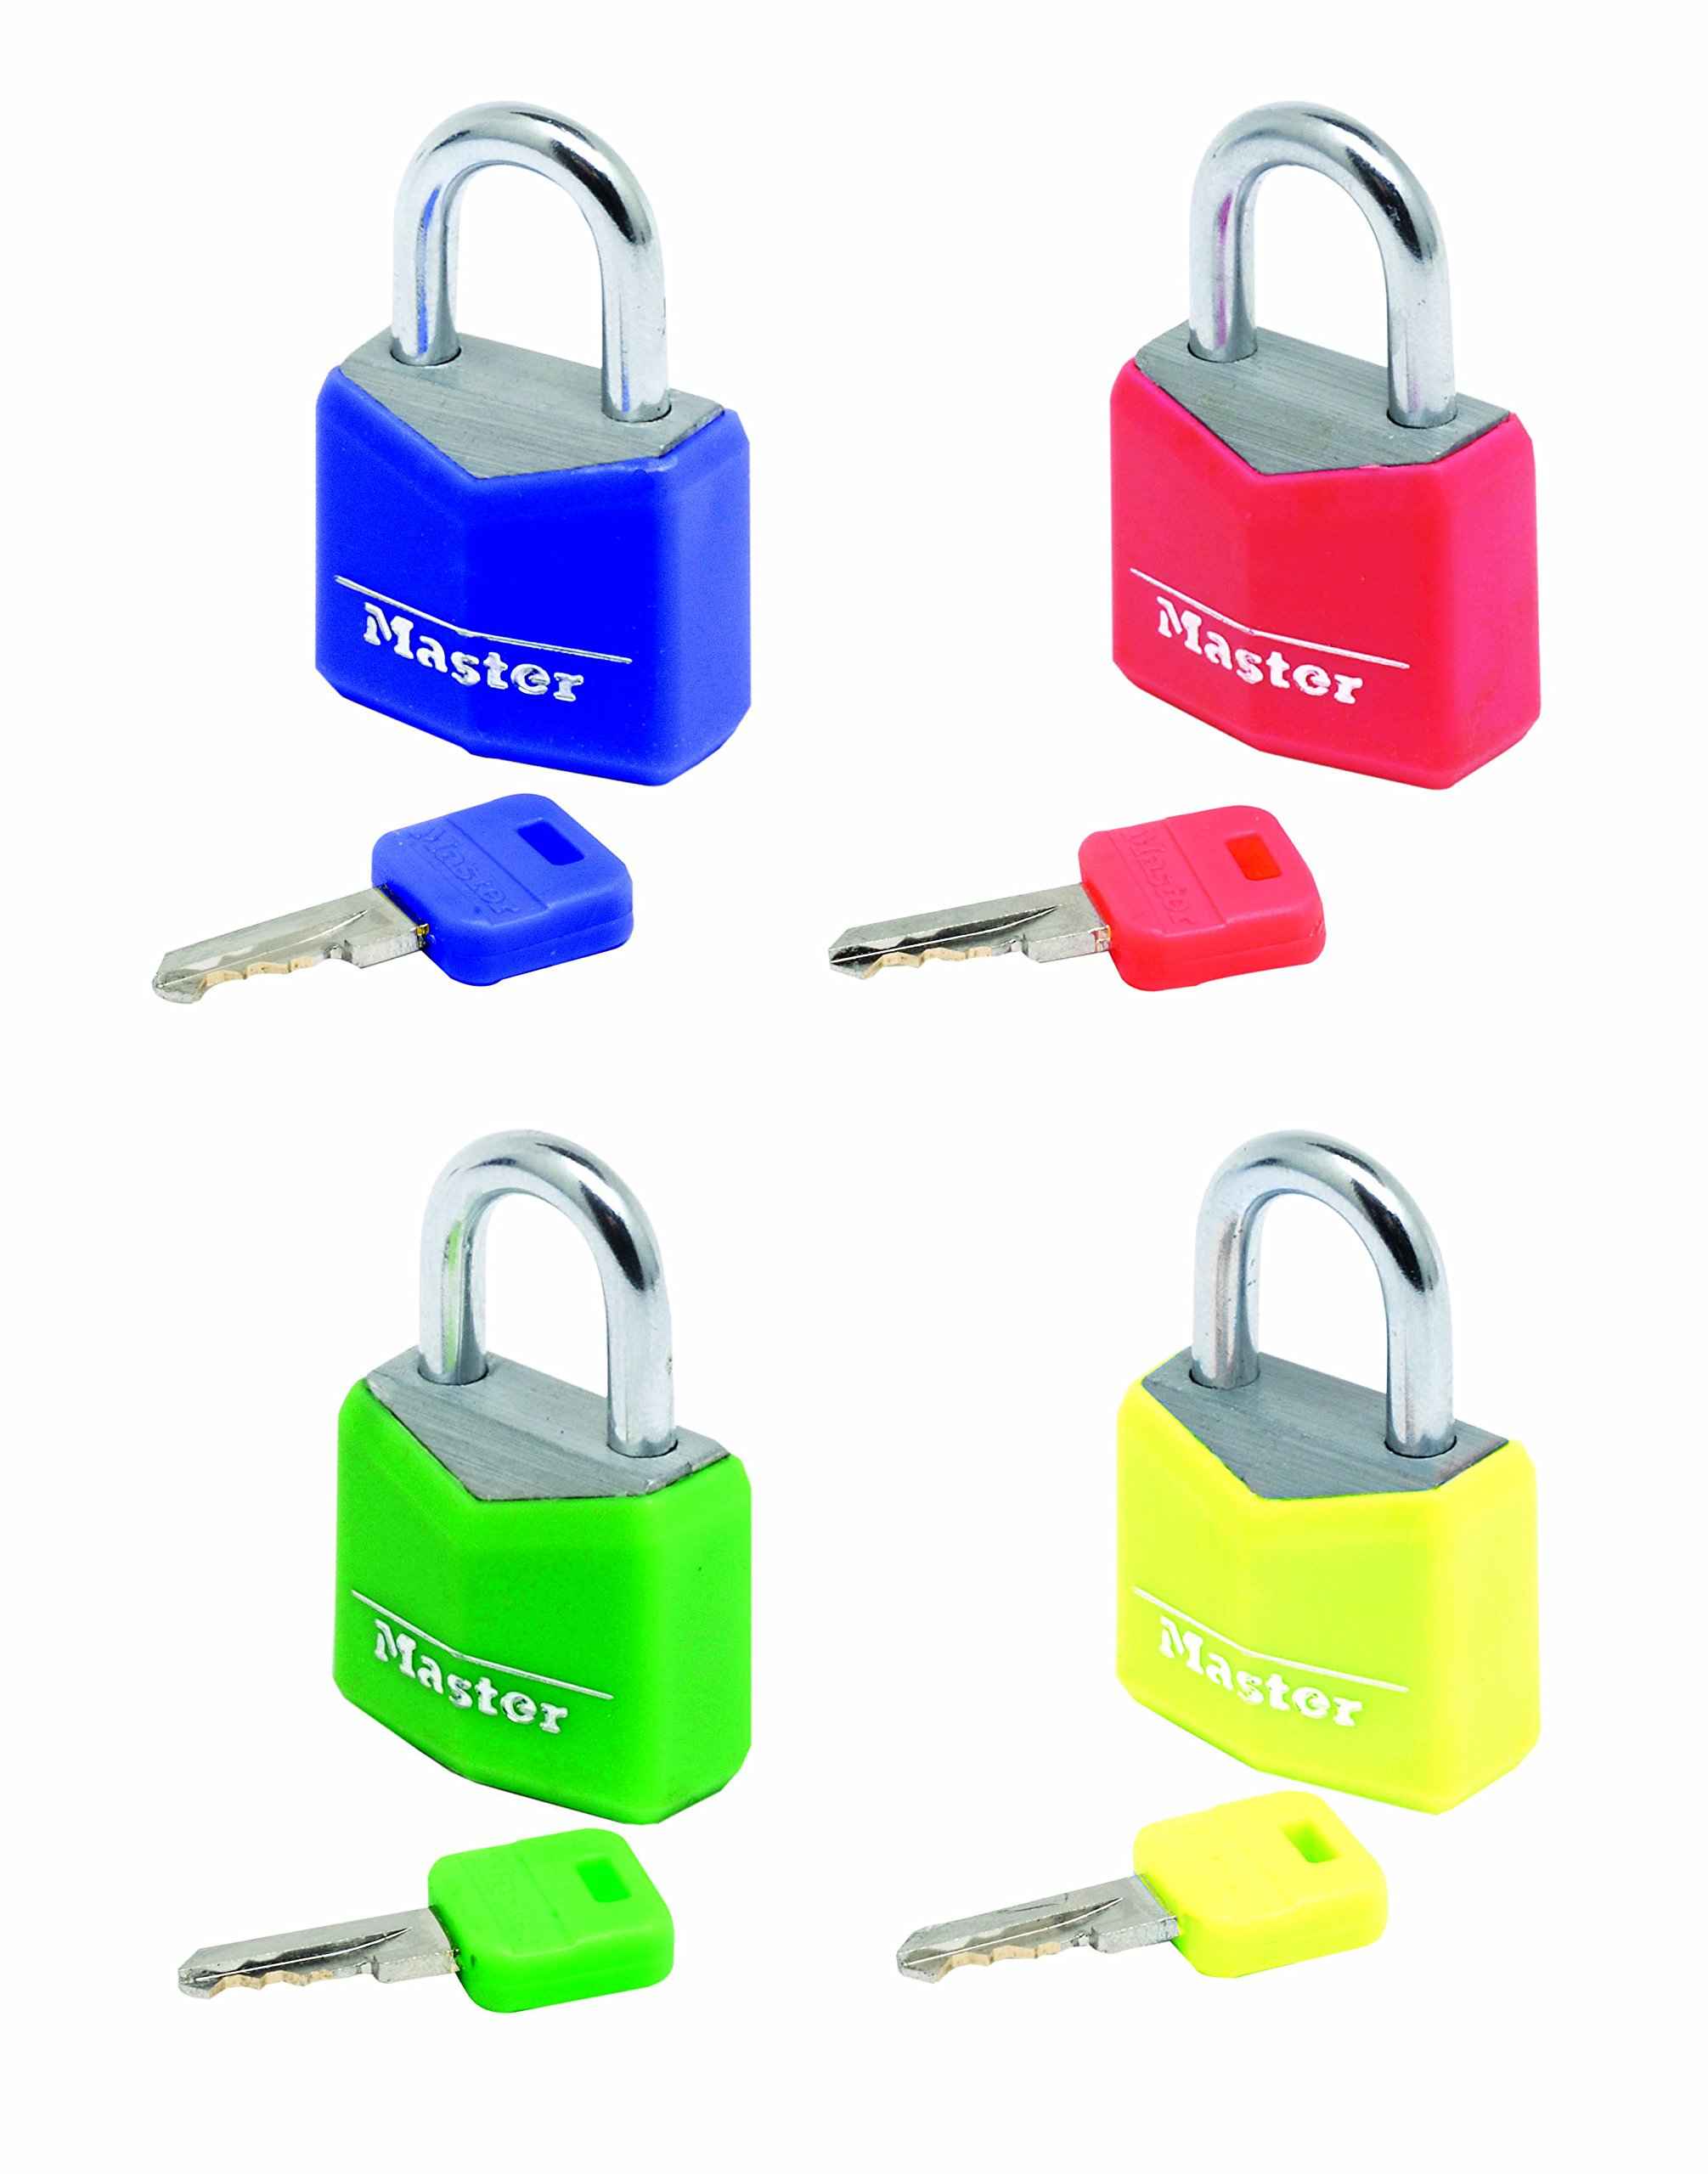 Master Lock Padlock, Solid Aluminum Body Lock, Keyed Alike, Best Used for Best Used for Indoor Storage Lockers, School Lockers and More, Assorted Colours (Pack of 4)